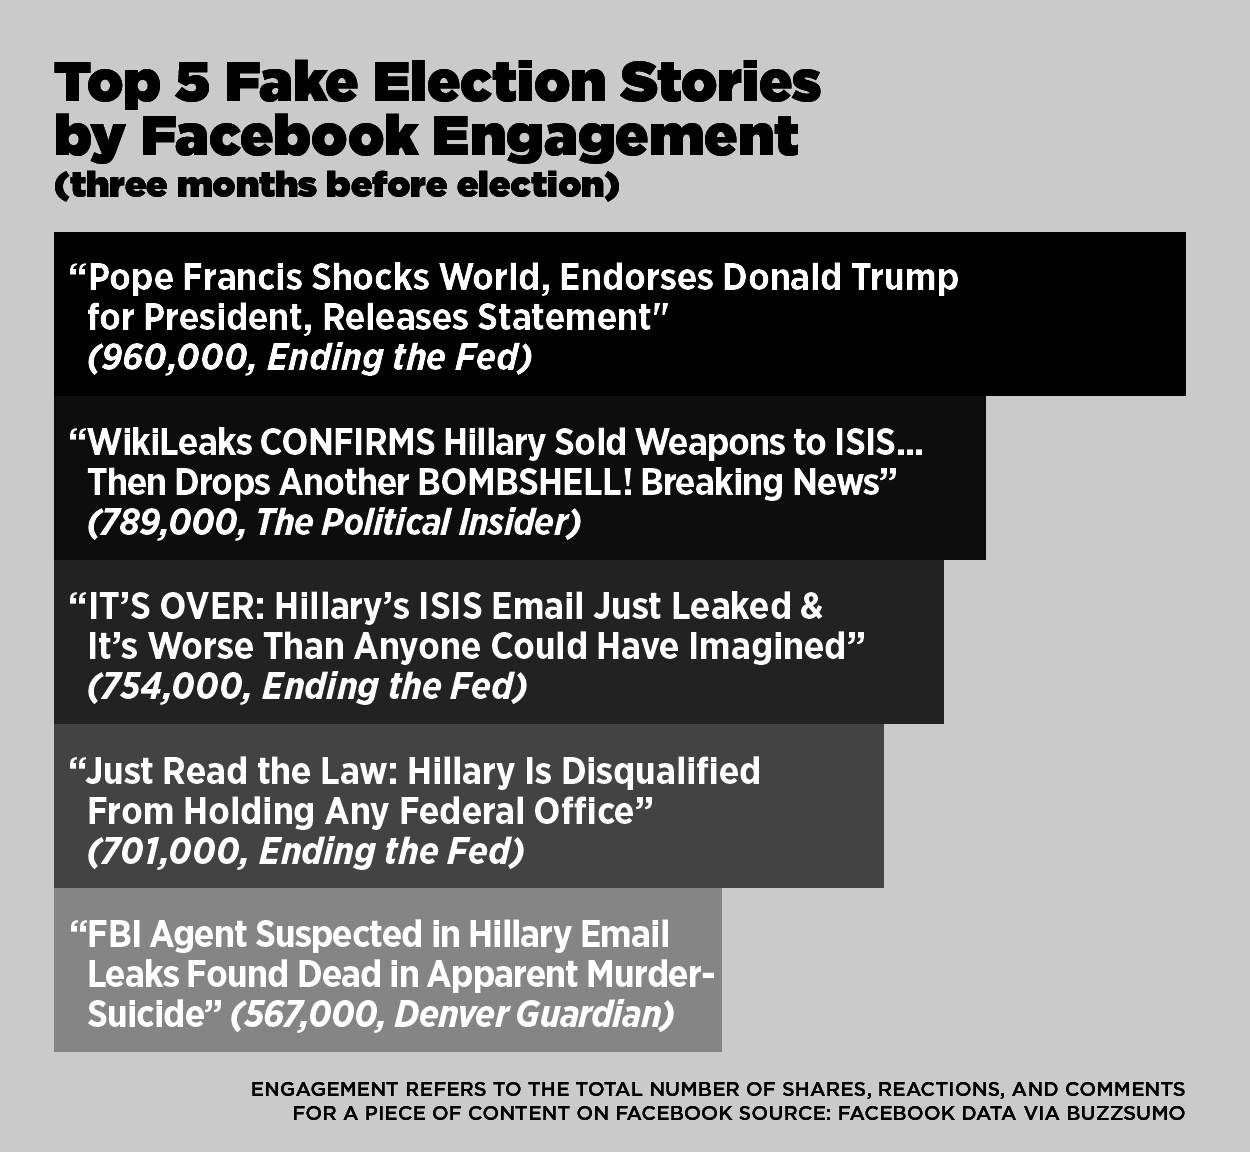 Viral News Online Home: This Analysis Shows How Viral Fake Election News Stories